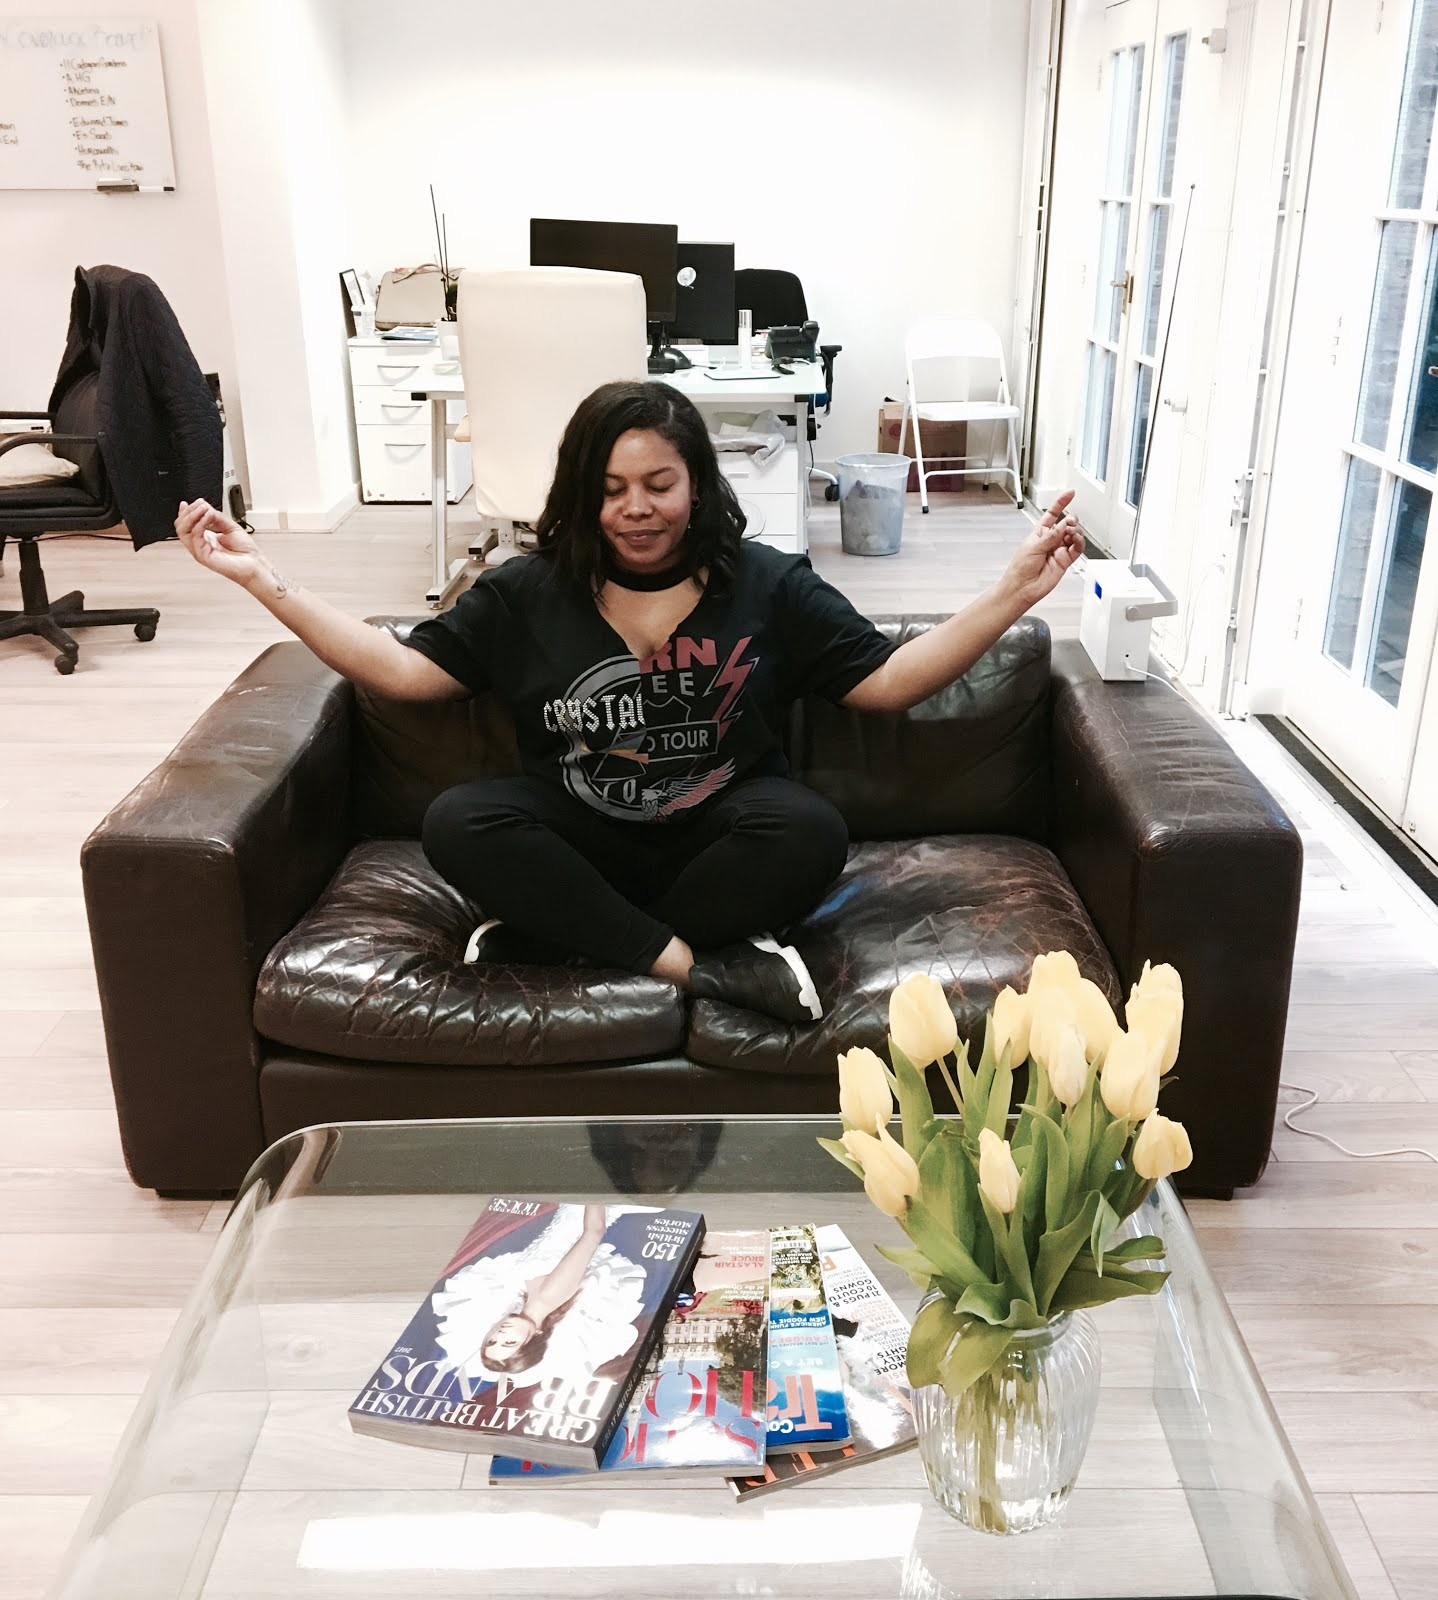 Can You Really Exercise In The Office? #Lbloggers #FitnessBloggers #FitFam #AD